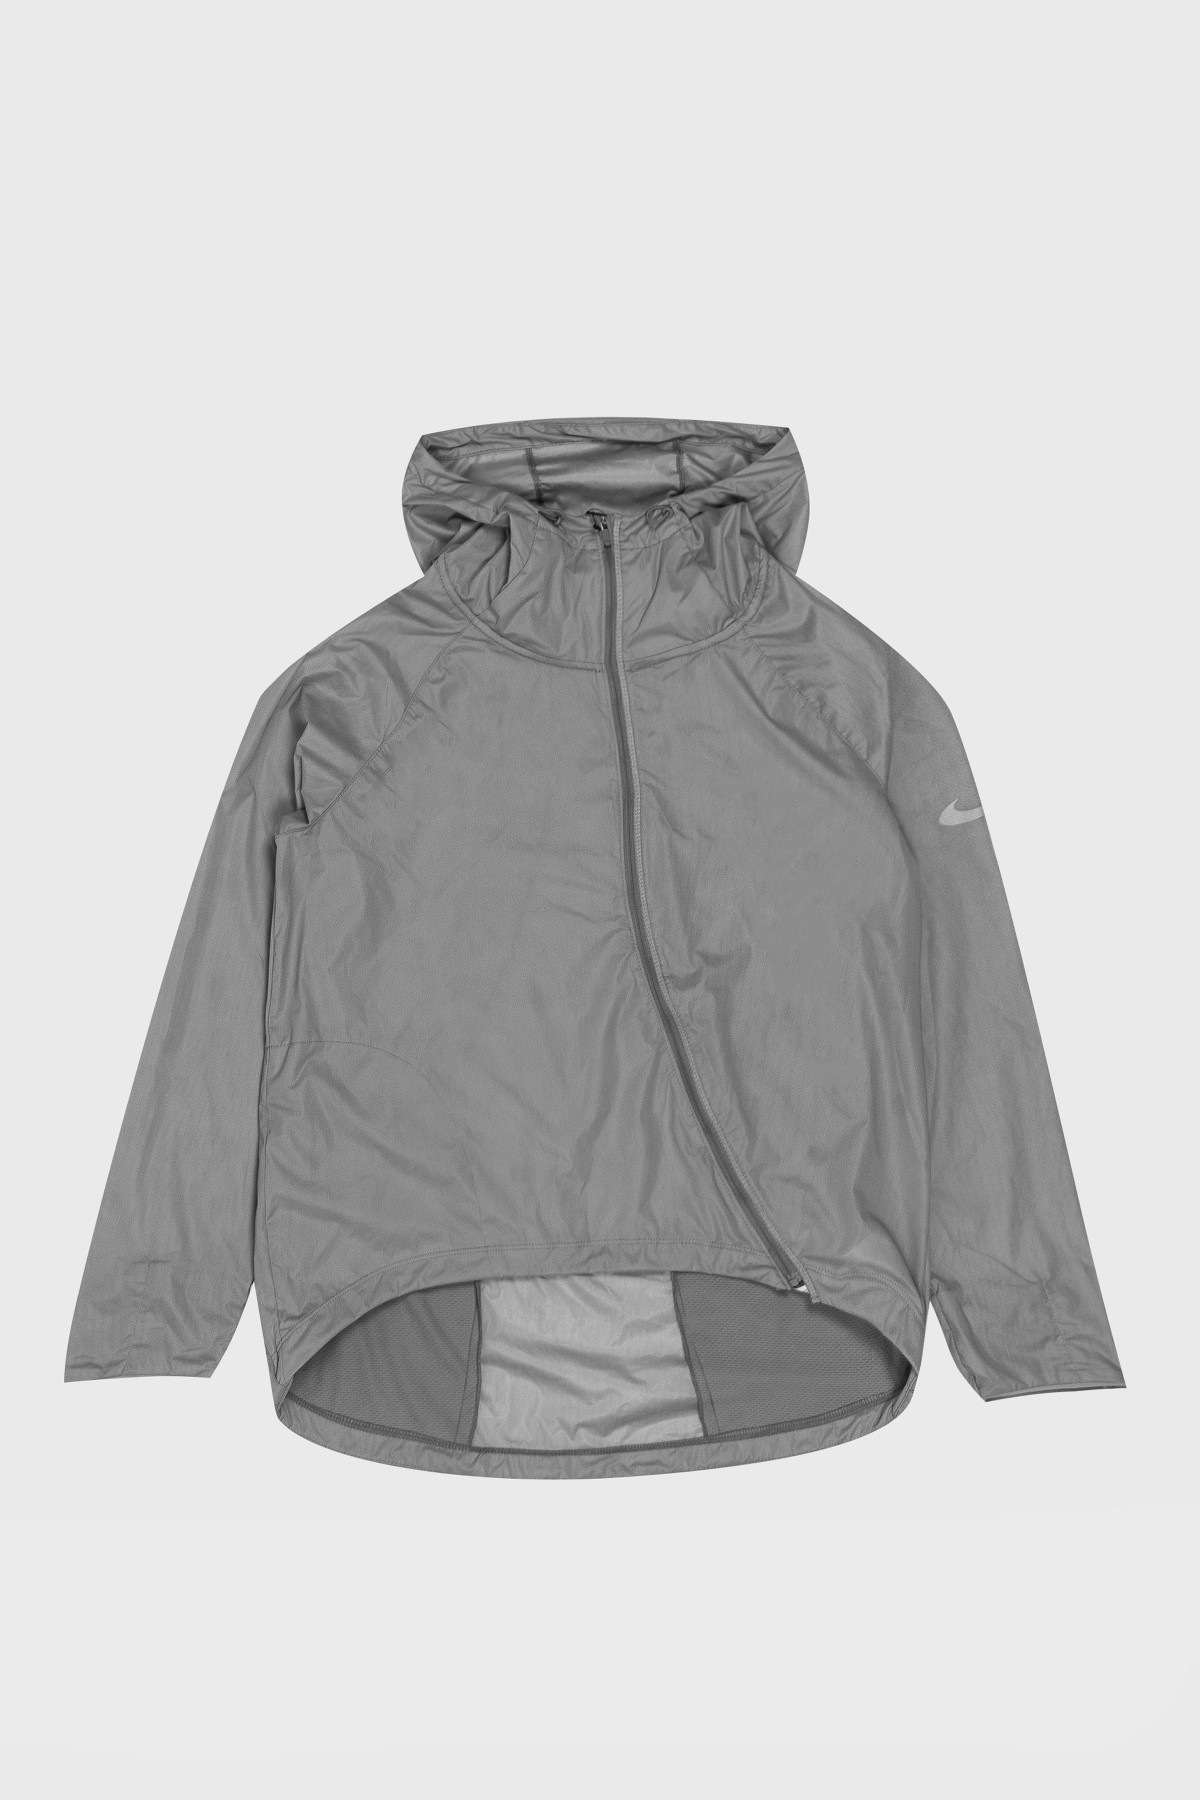 Nike W - Shield jacket HD Runway - Grey